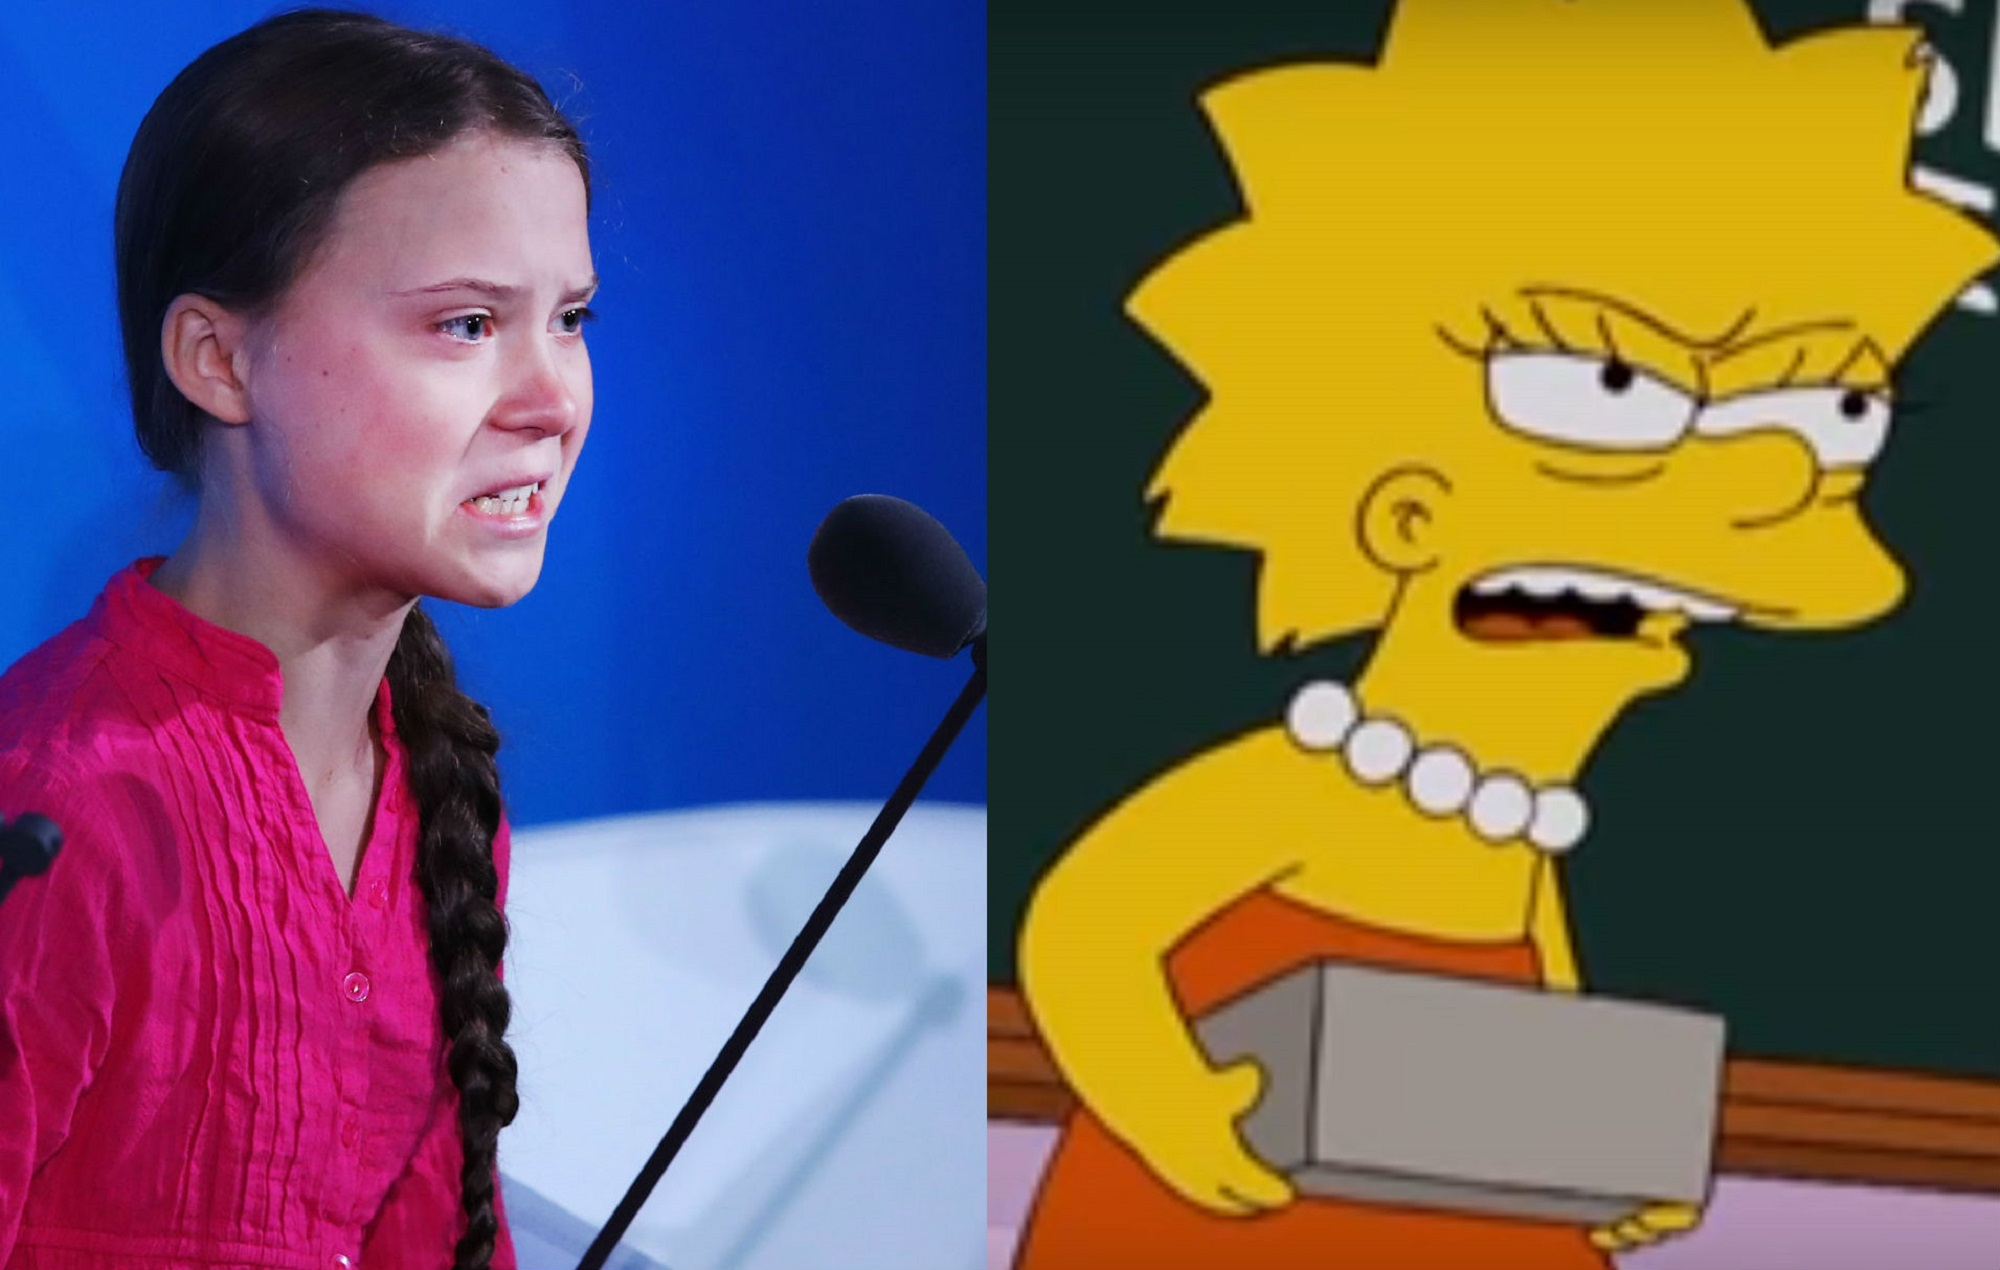 'The Simpsons' predicted Greta Thunberg's climate change speech in 2007